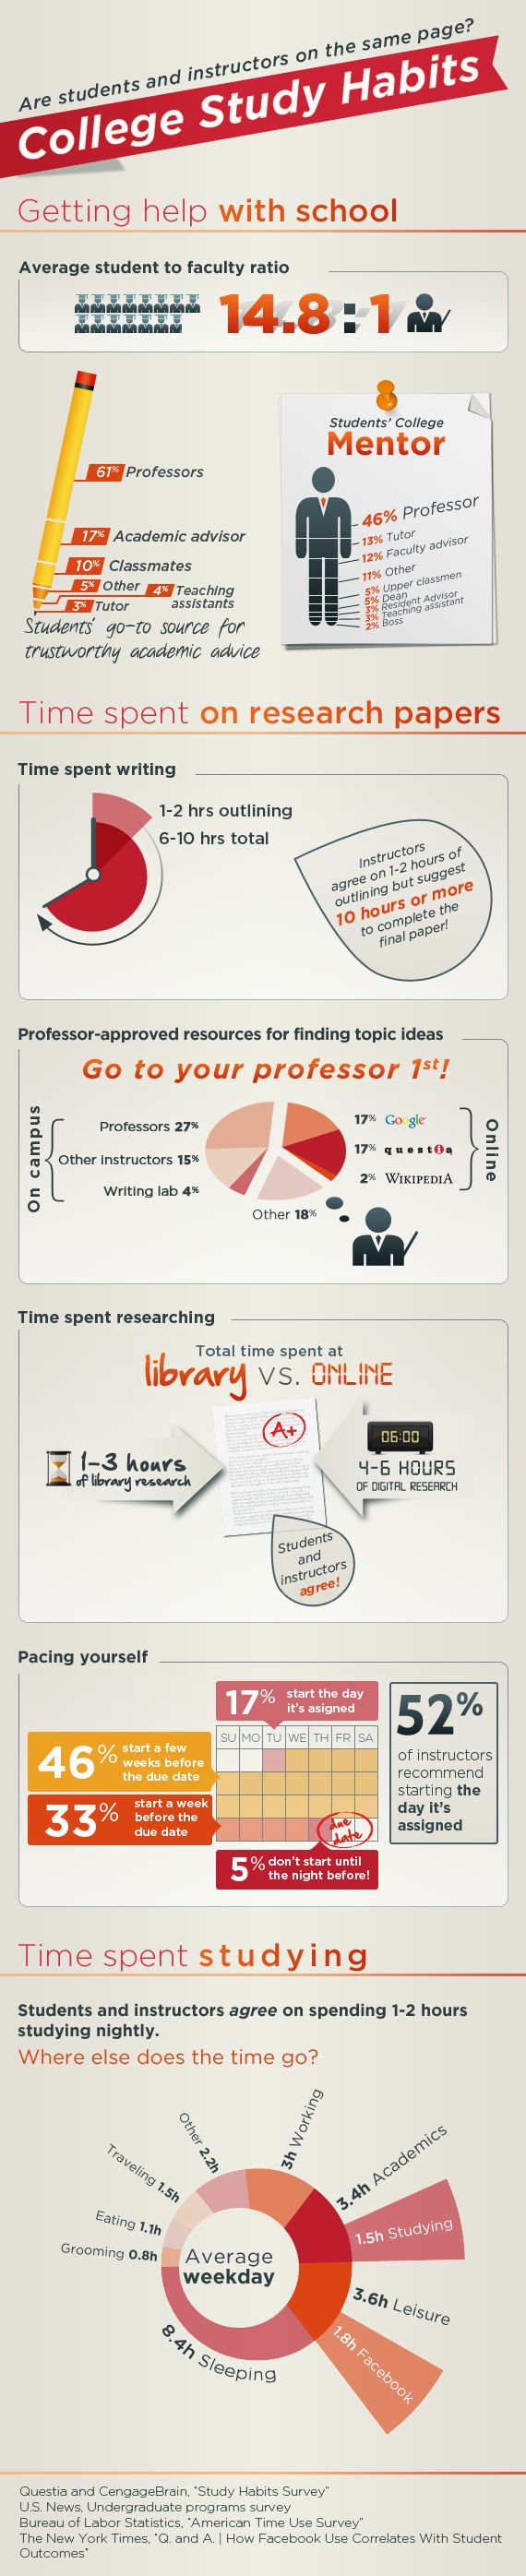 College Study Habits [INFOGRAPHIC] #college #study #habits